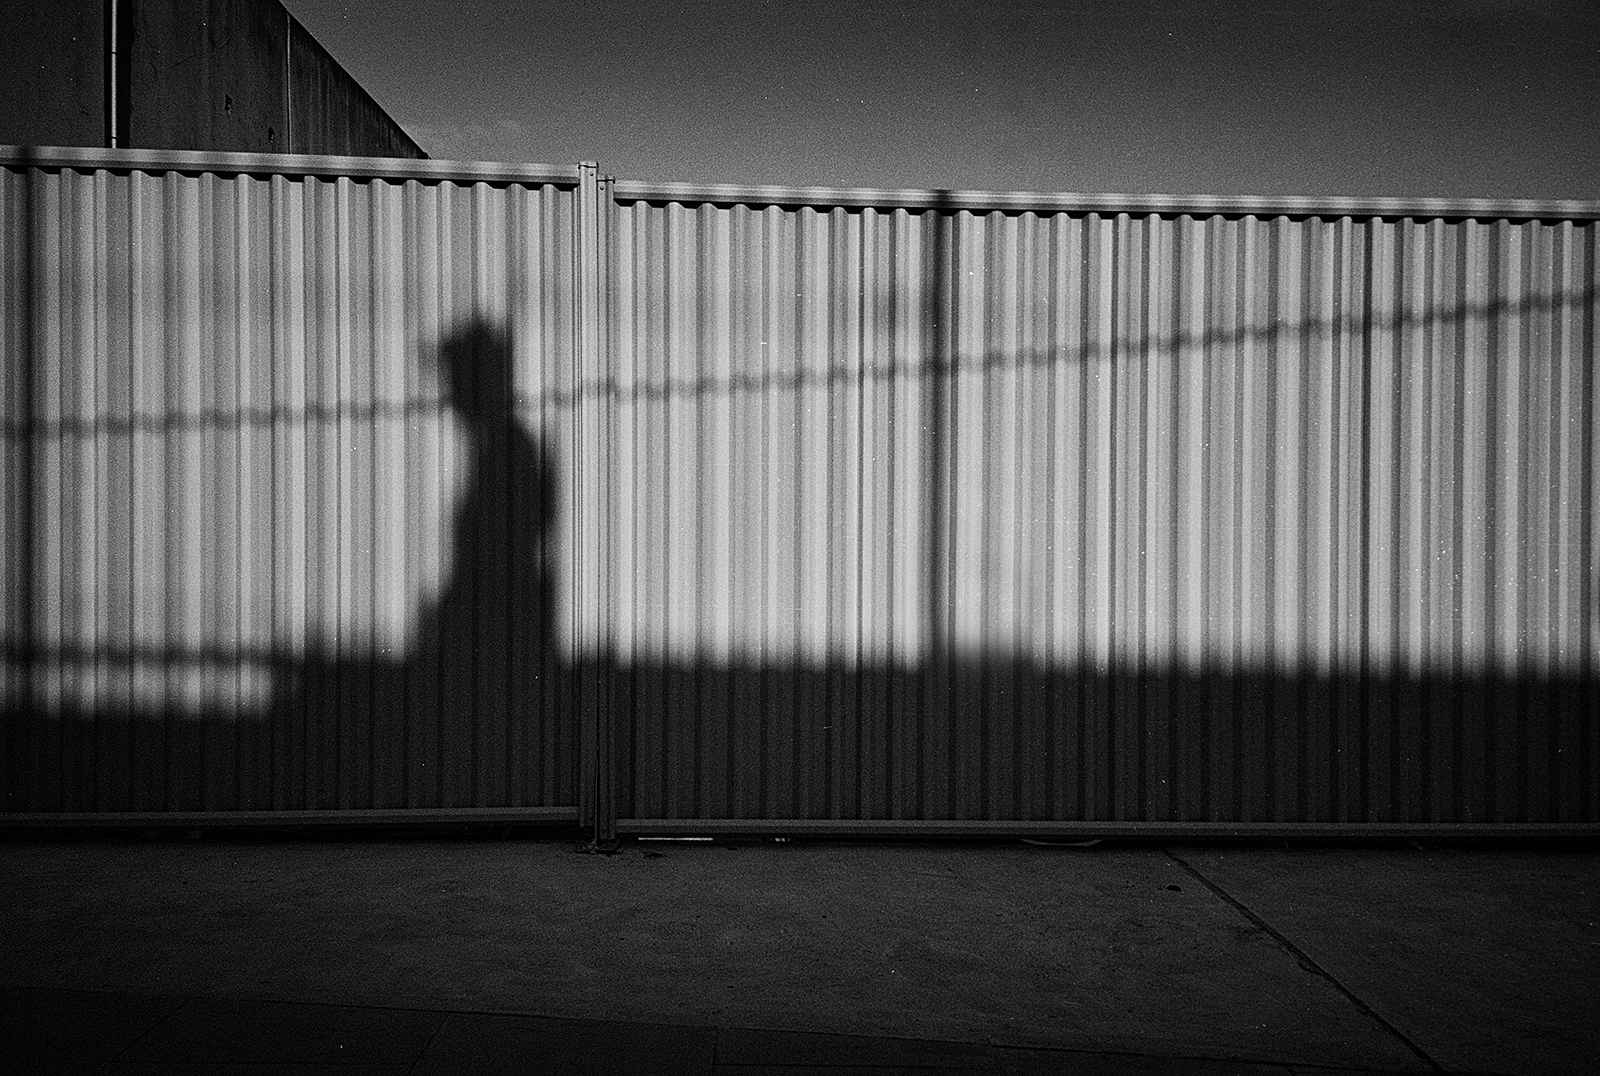 Shadow on corrugated wall, in black and white